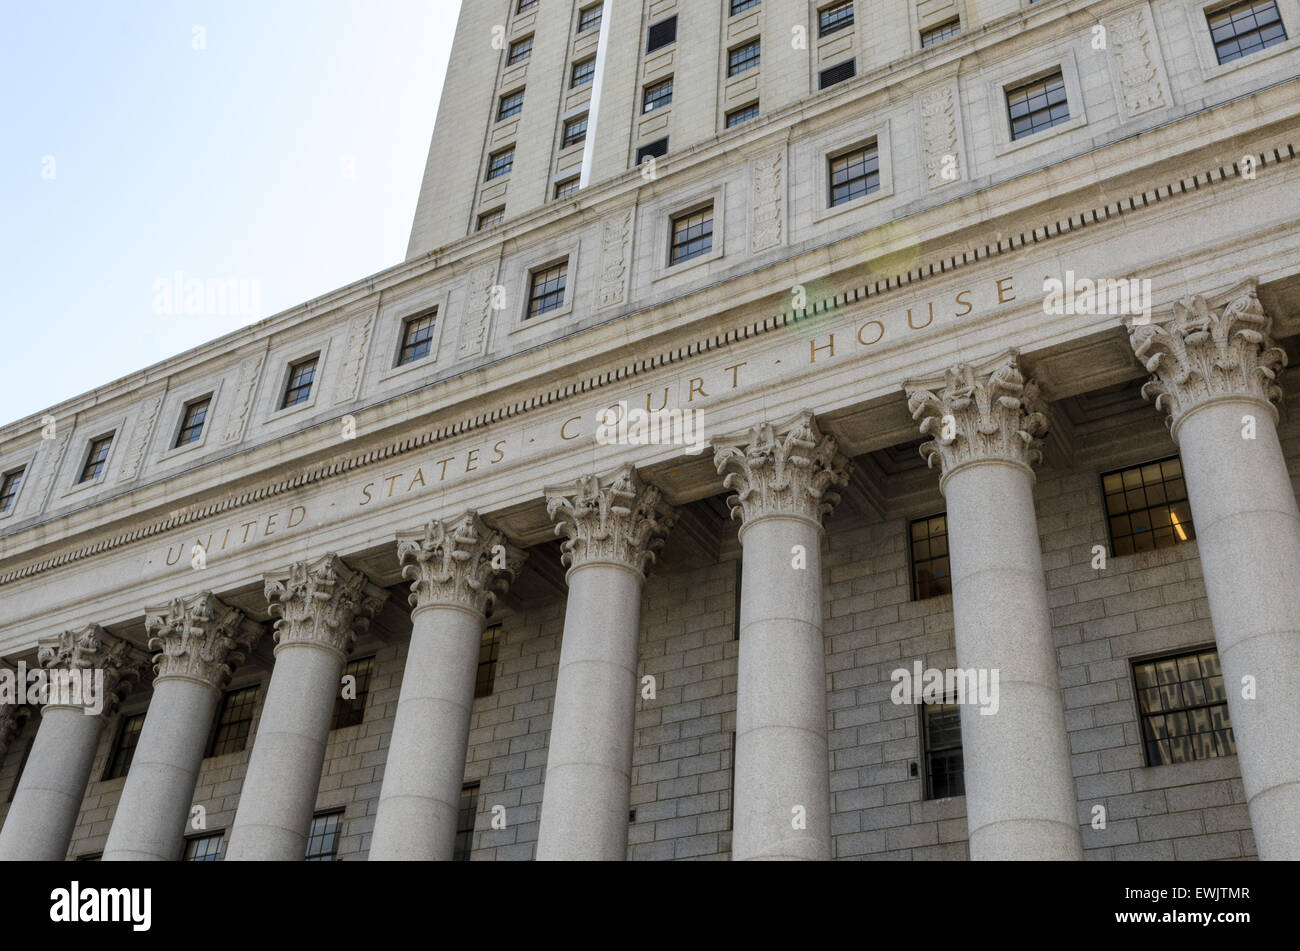 United States Court House dans Lower Manhattan, New York City Photo Stock